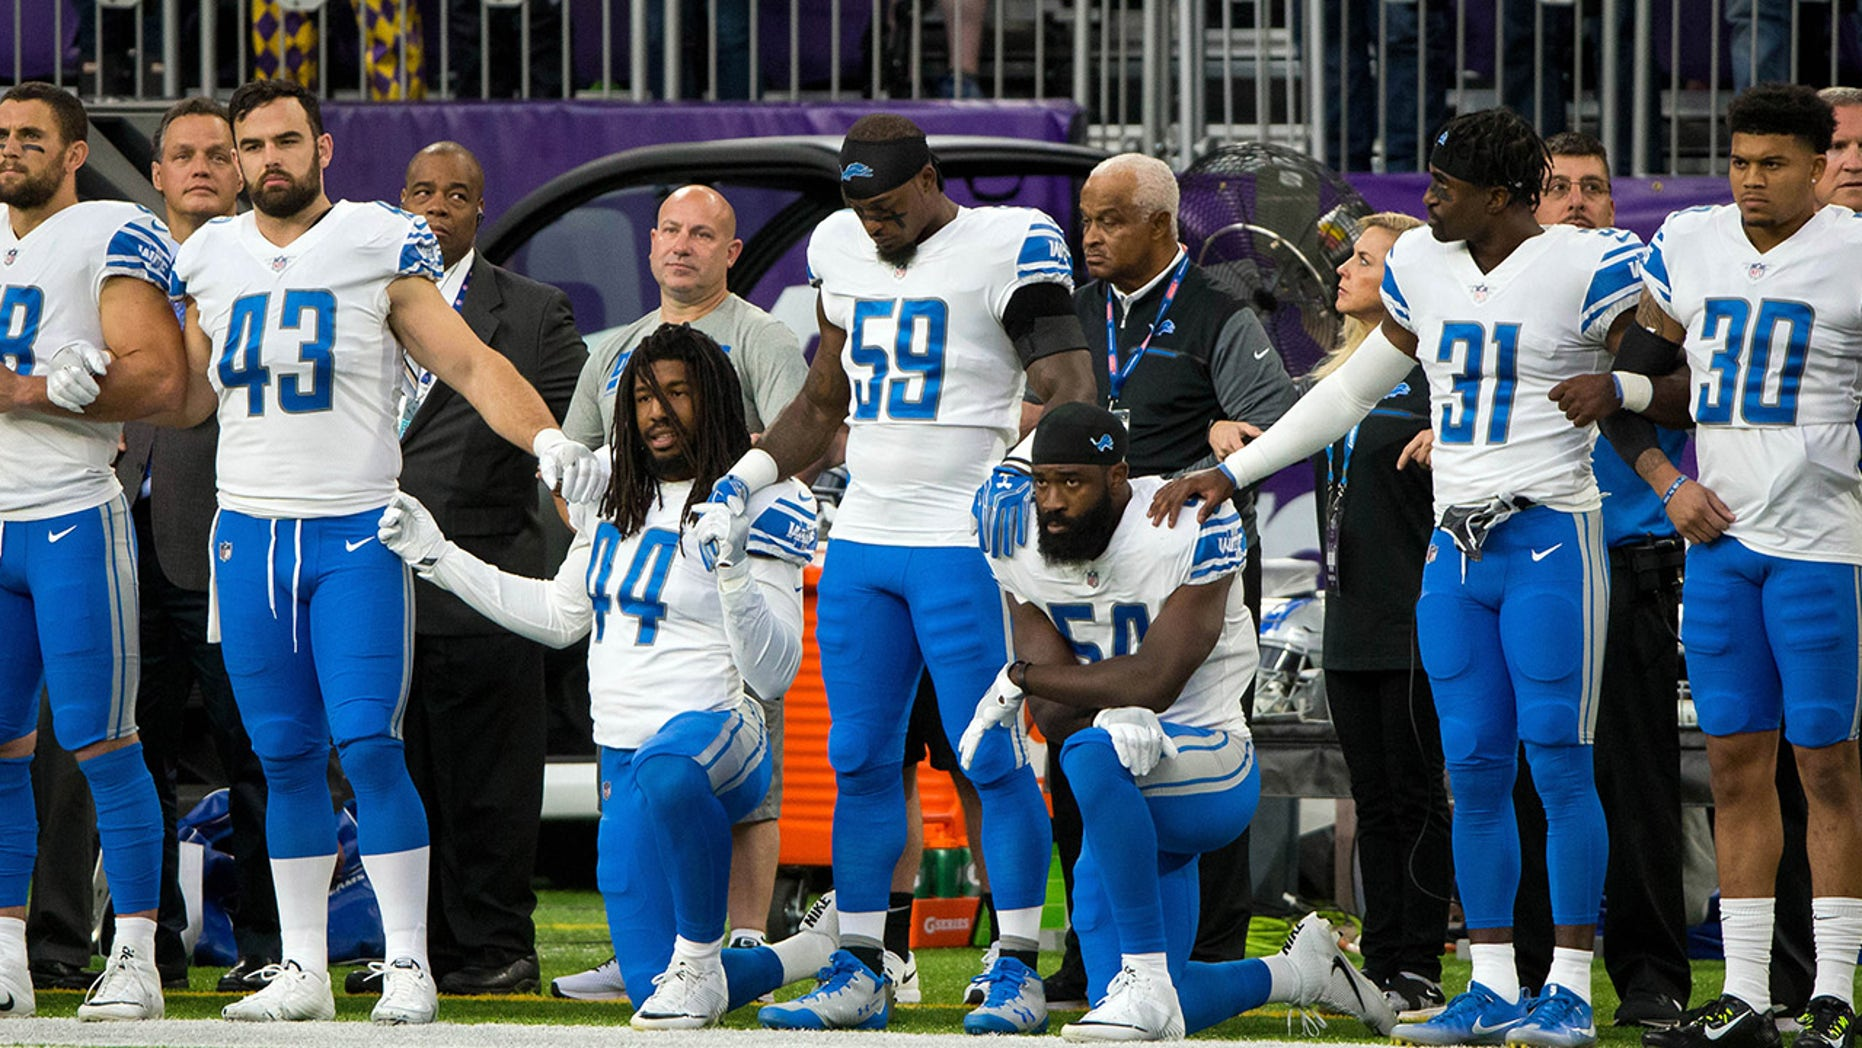 Detroit Lions players kneel while others stand during the national anthem before the game against the Minnesota Vikings.